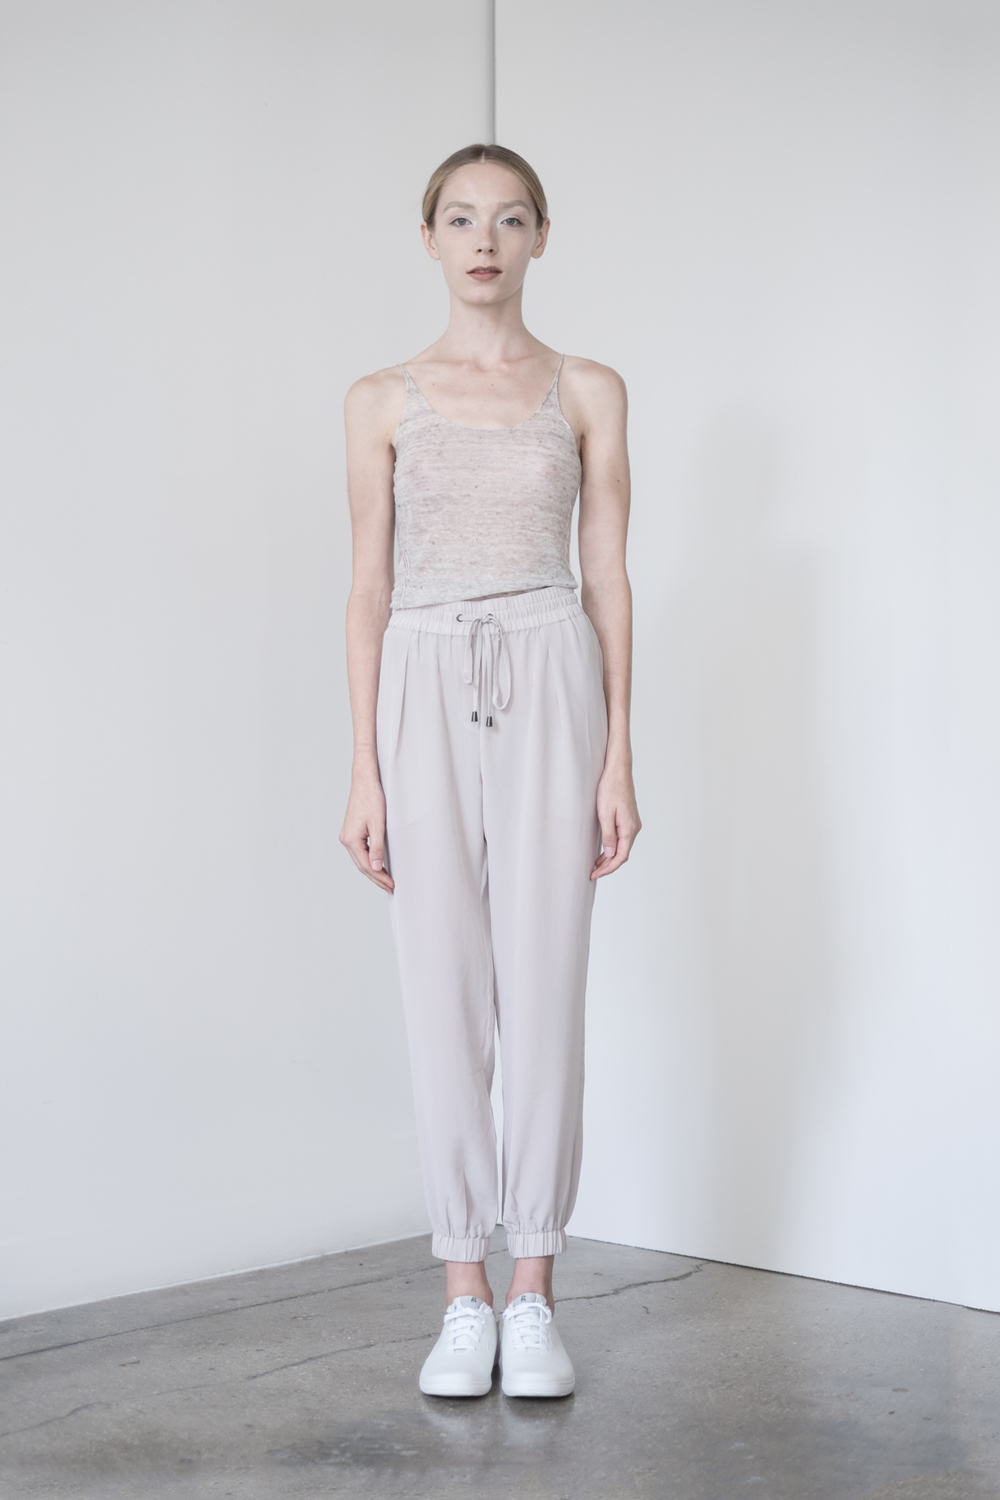 "LOOK 19   TOP:   2289  / Sand -           0   0   2015-09-15T00:56:00Z   1   5   33   Rick Owens   1   1   37   14.0                       Normal   0             false   false   false     EN-US   JA   X-NONE                                                                                                                                                                                                                                                                                                                                                                               /* Style Definitions */ table.MsoNormalTable 	{mso-style-name:""Table Normal""; 	mso-tstyle-rowband-size:0; 	mso-tstyle-colband-size:0; 	mso-style-noshow:yes; 	mso-style-priority:99; 	mso-style-parent:""""; 	mso-padding-alt:0in 5.4pt 0in 5.4pt; 	mso-para-margin:0in; 	mso-para-margin-bottom:.0001pt; 	mso-pagination:widow-orphan; 	font-size:12.0pt; 	font-family:Cambria; 	mso-ascii-font-family:Cambria; 	mso-ascii-theme-font:minor-latin; 	mso-hansi-font-family:Cambria; 	mso-hansi-theme-font:minor-latin;}       Sleeveless fine gauge Italian linen.     BOTTOM:   2203  / Dove -    Jogger pants in 100% Silk."